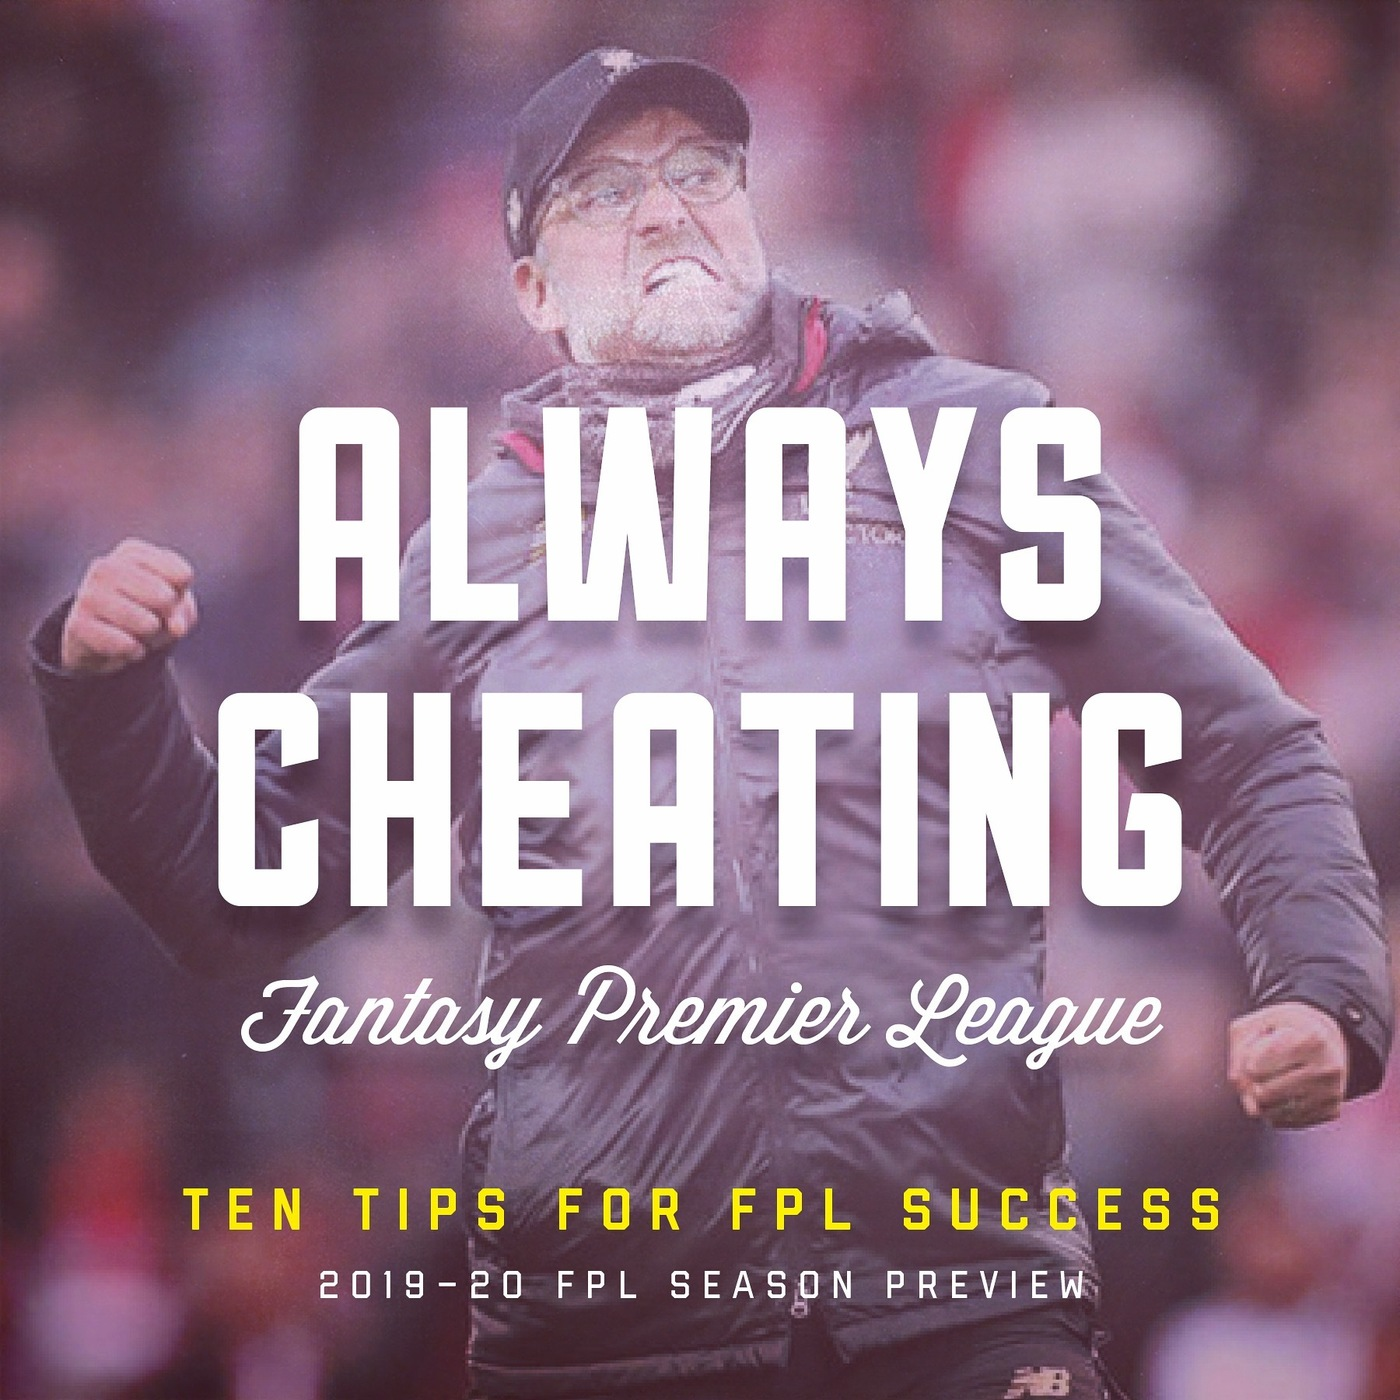 Ep 179: Ten Tips for FPL Success (2019-20 Edition)